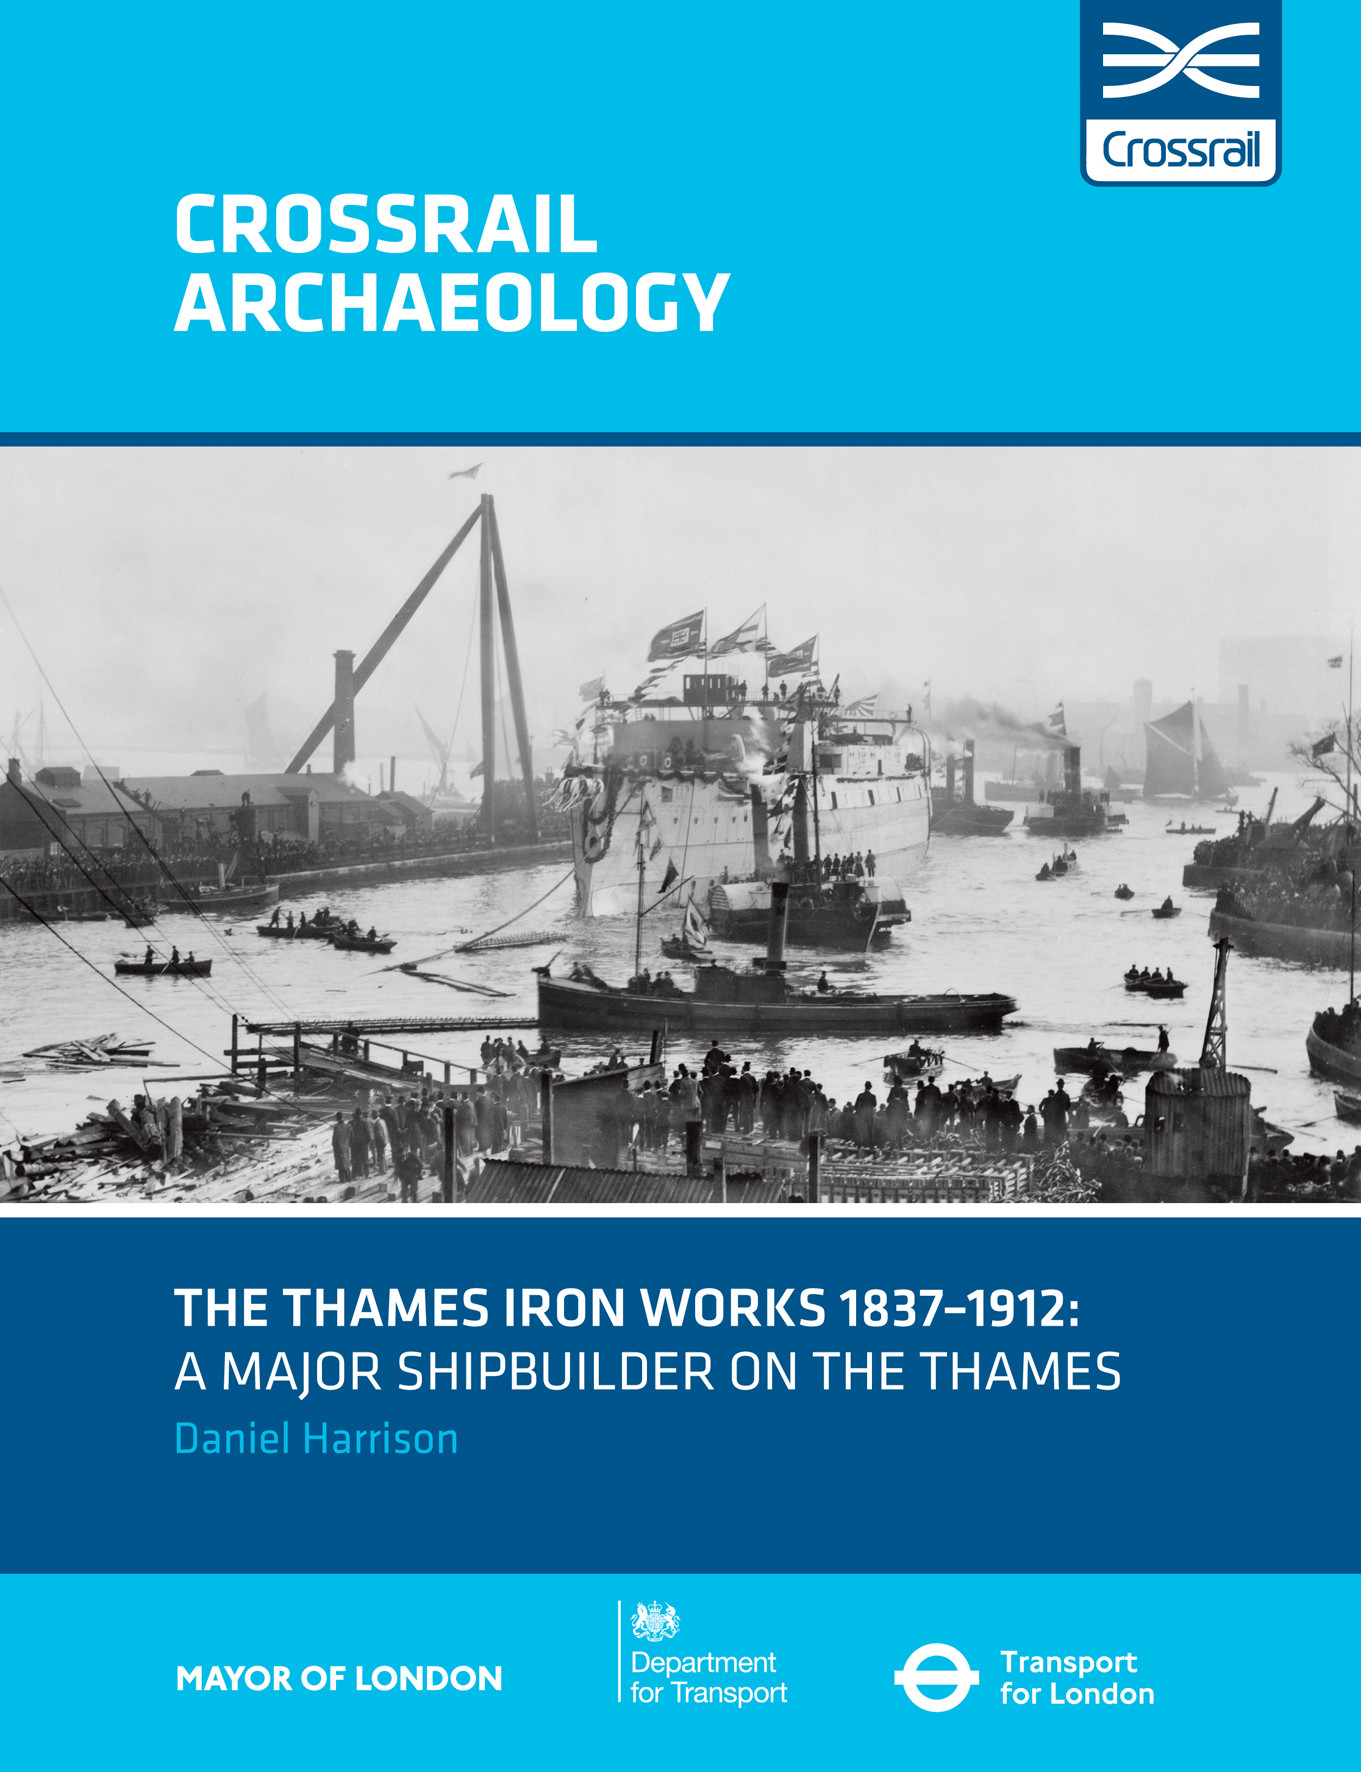 The Thames Iron Works 1837-1912: a major shipbuilder on the Thames_218225